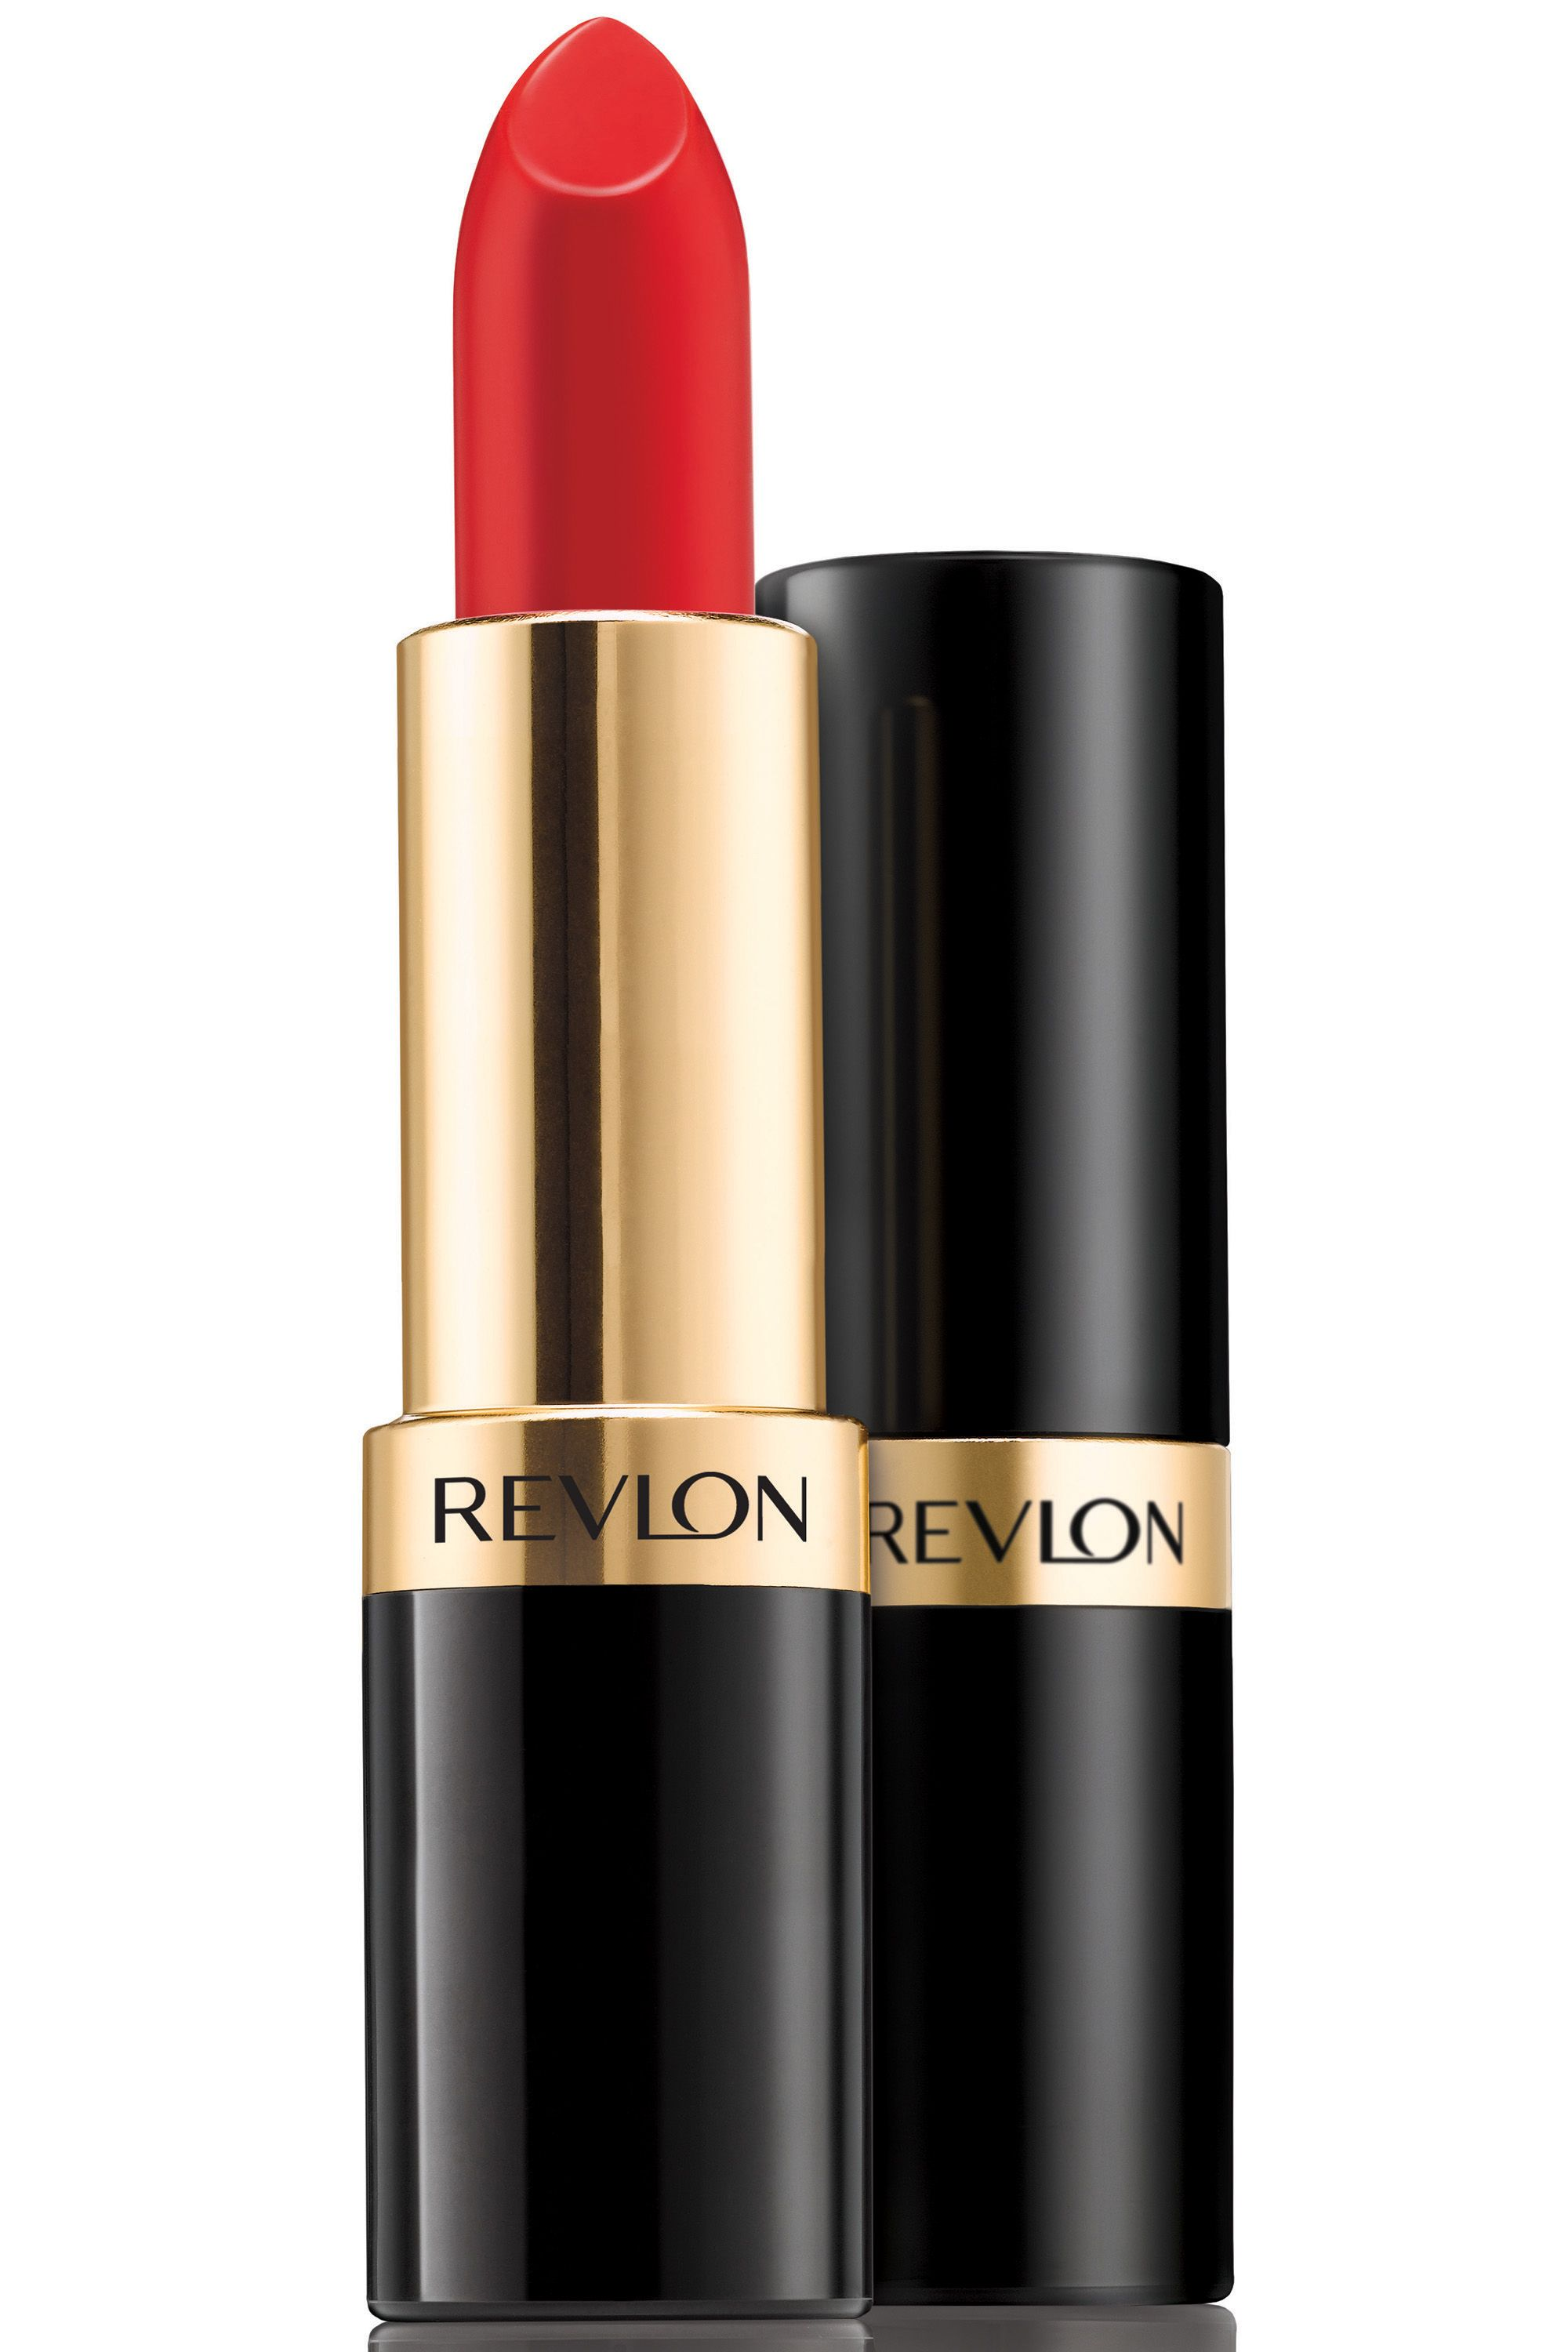 "<p>This glamorous Hollywood red has been the top-seller since the 1950s.</p><p><strong>Revlon</strong> Super Lustrous Lipstick in Fire & Ice, $6, <a href=""http://www.drugstore.com/revlon-super-lustrous--creme-lipstick-fire-and-ice/qxp36032"" target=""_blank"">drugstore.com</a>.</p>"